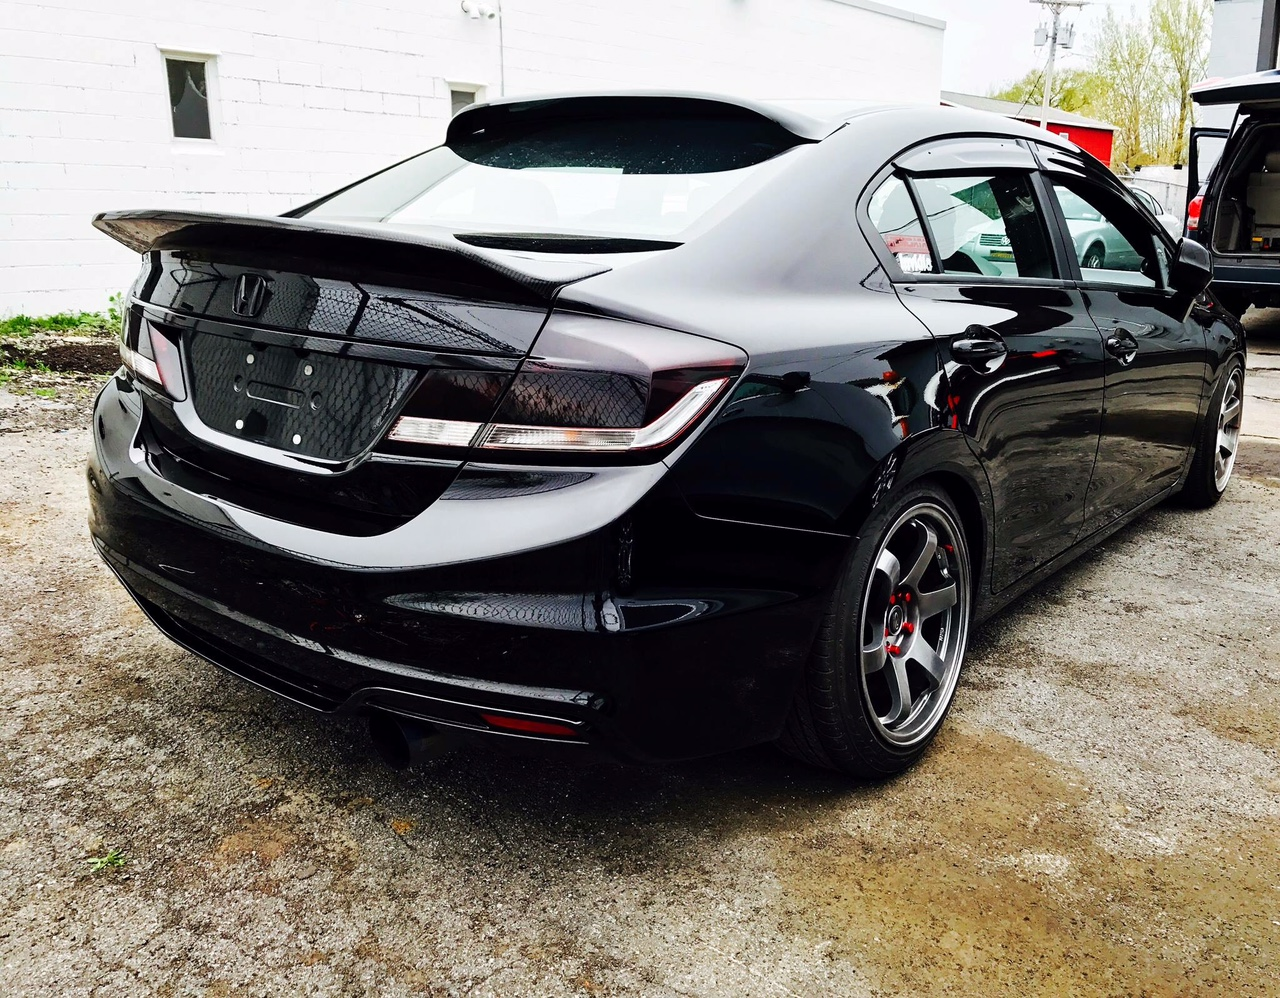 13-15 Civic Duckbill 1.JPG